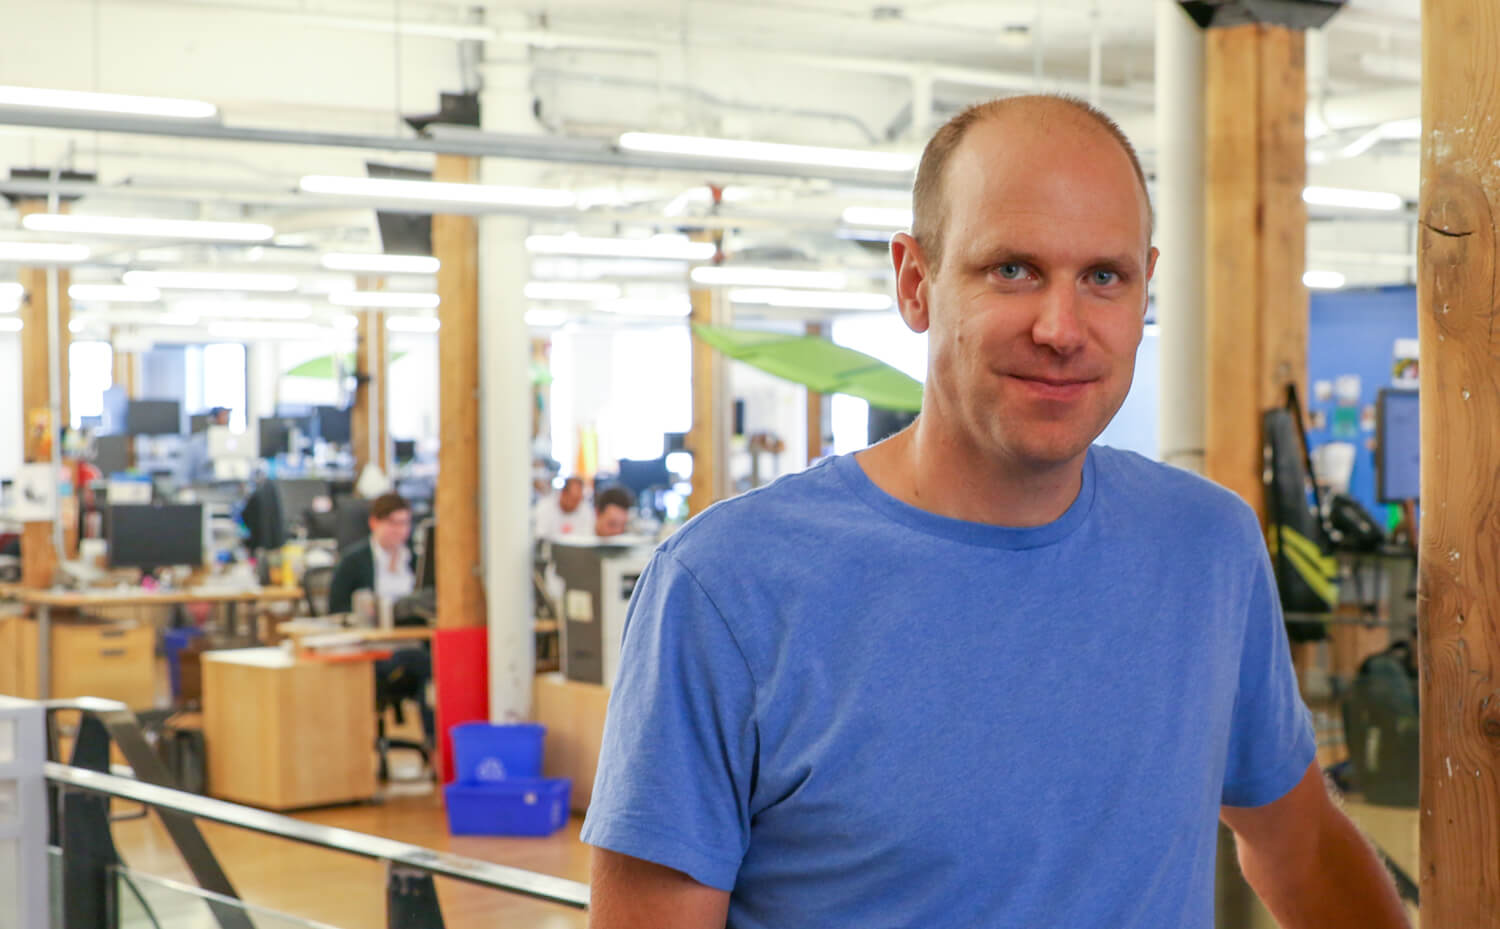 Mike McDerment, Co-Founder & CEO of Freshbooks in the Company's Head Office in Toronto. (Photo by Techvibes).